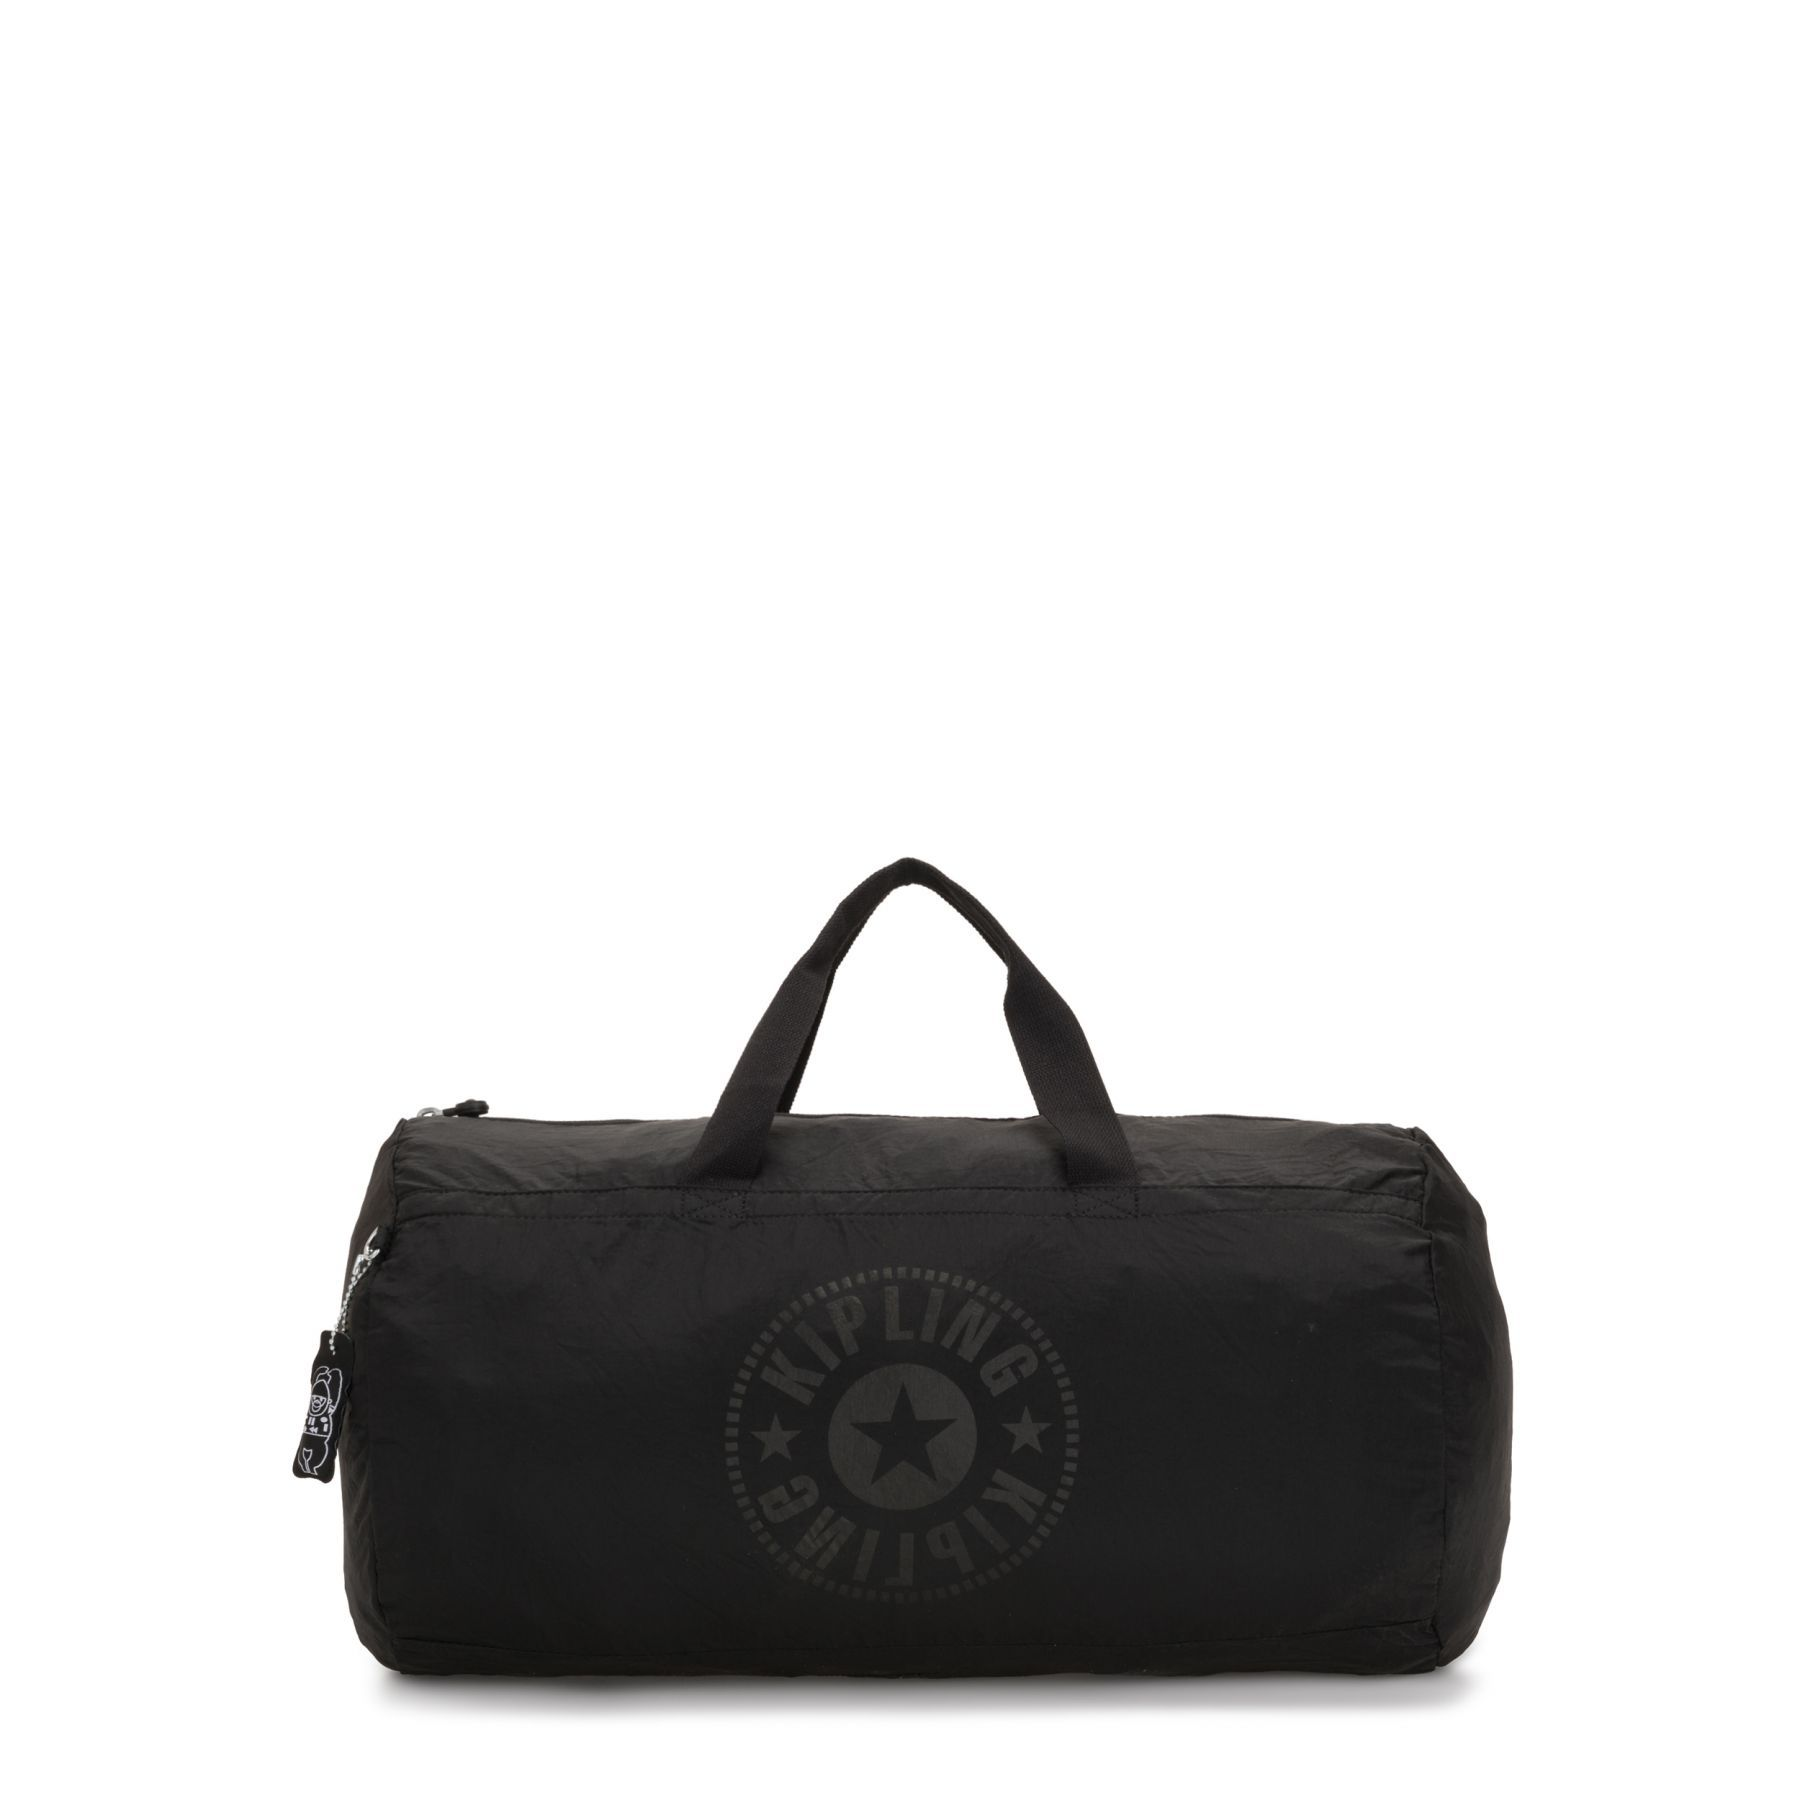 Bolsa Média Kipling Onalo Packable Black Light